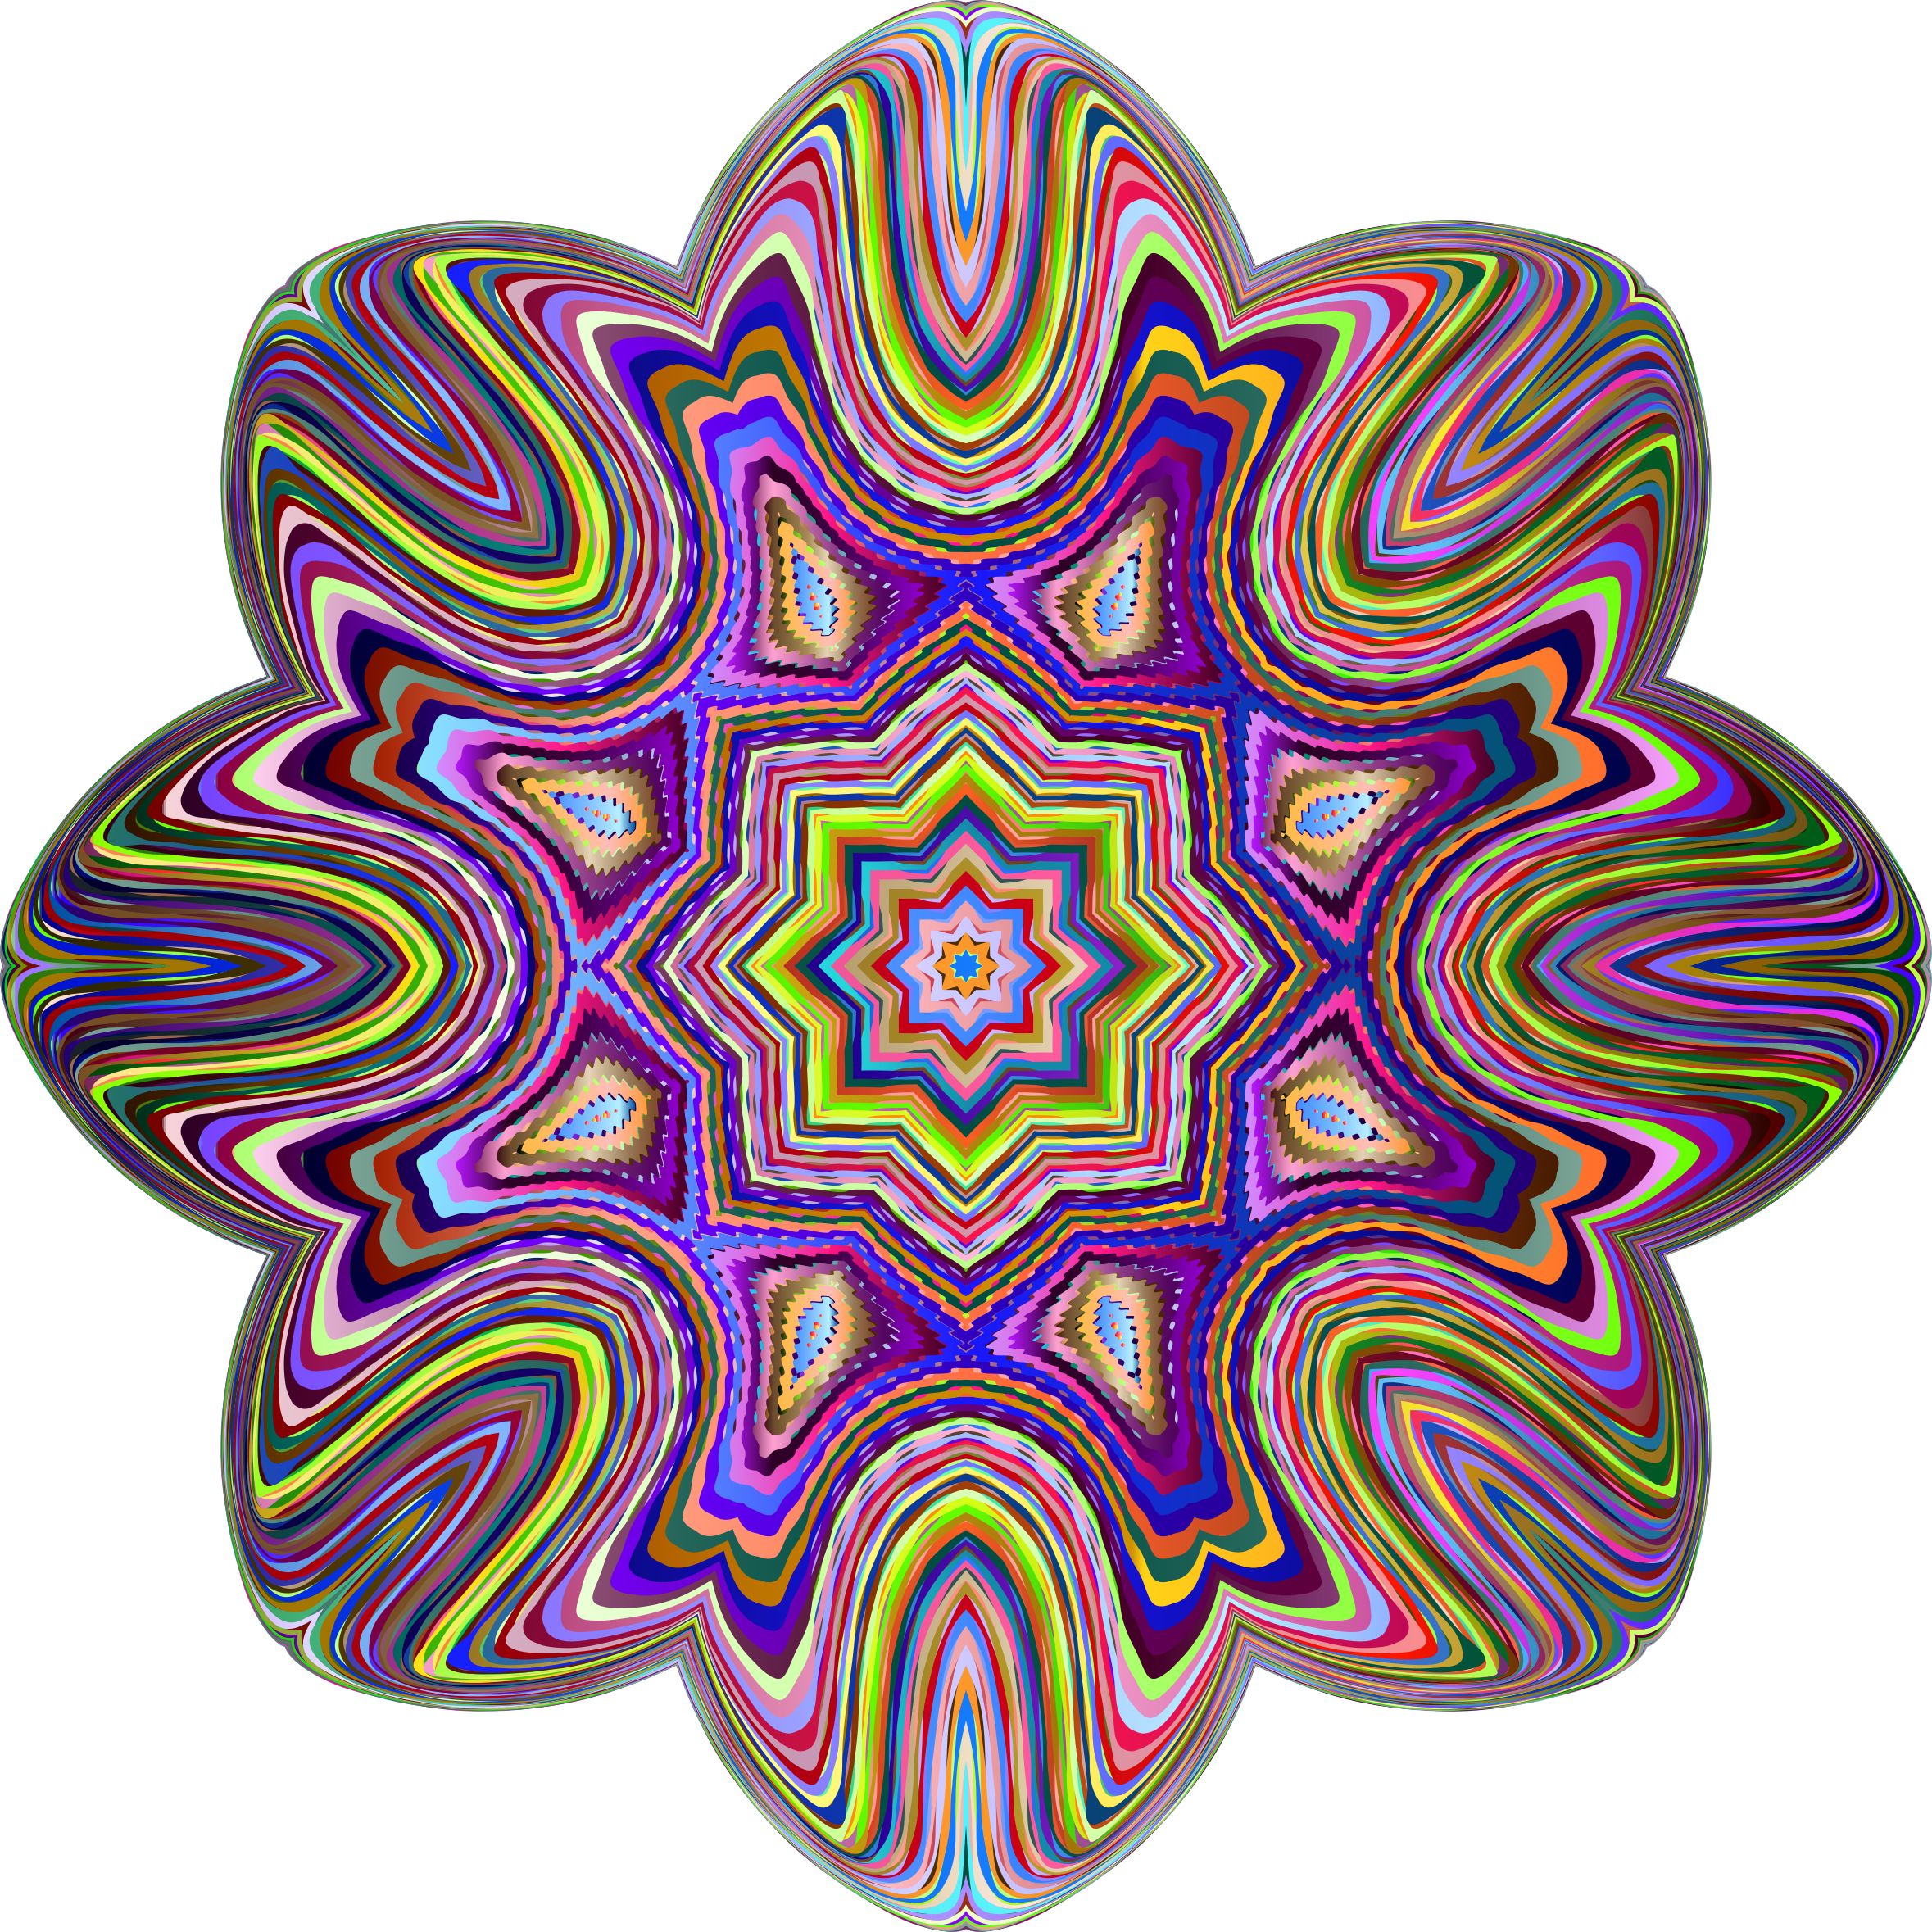 Psychedelic Geometry by GDJ